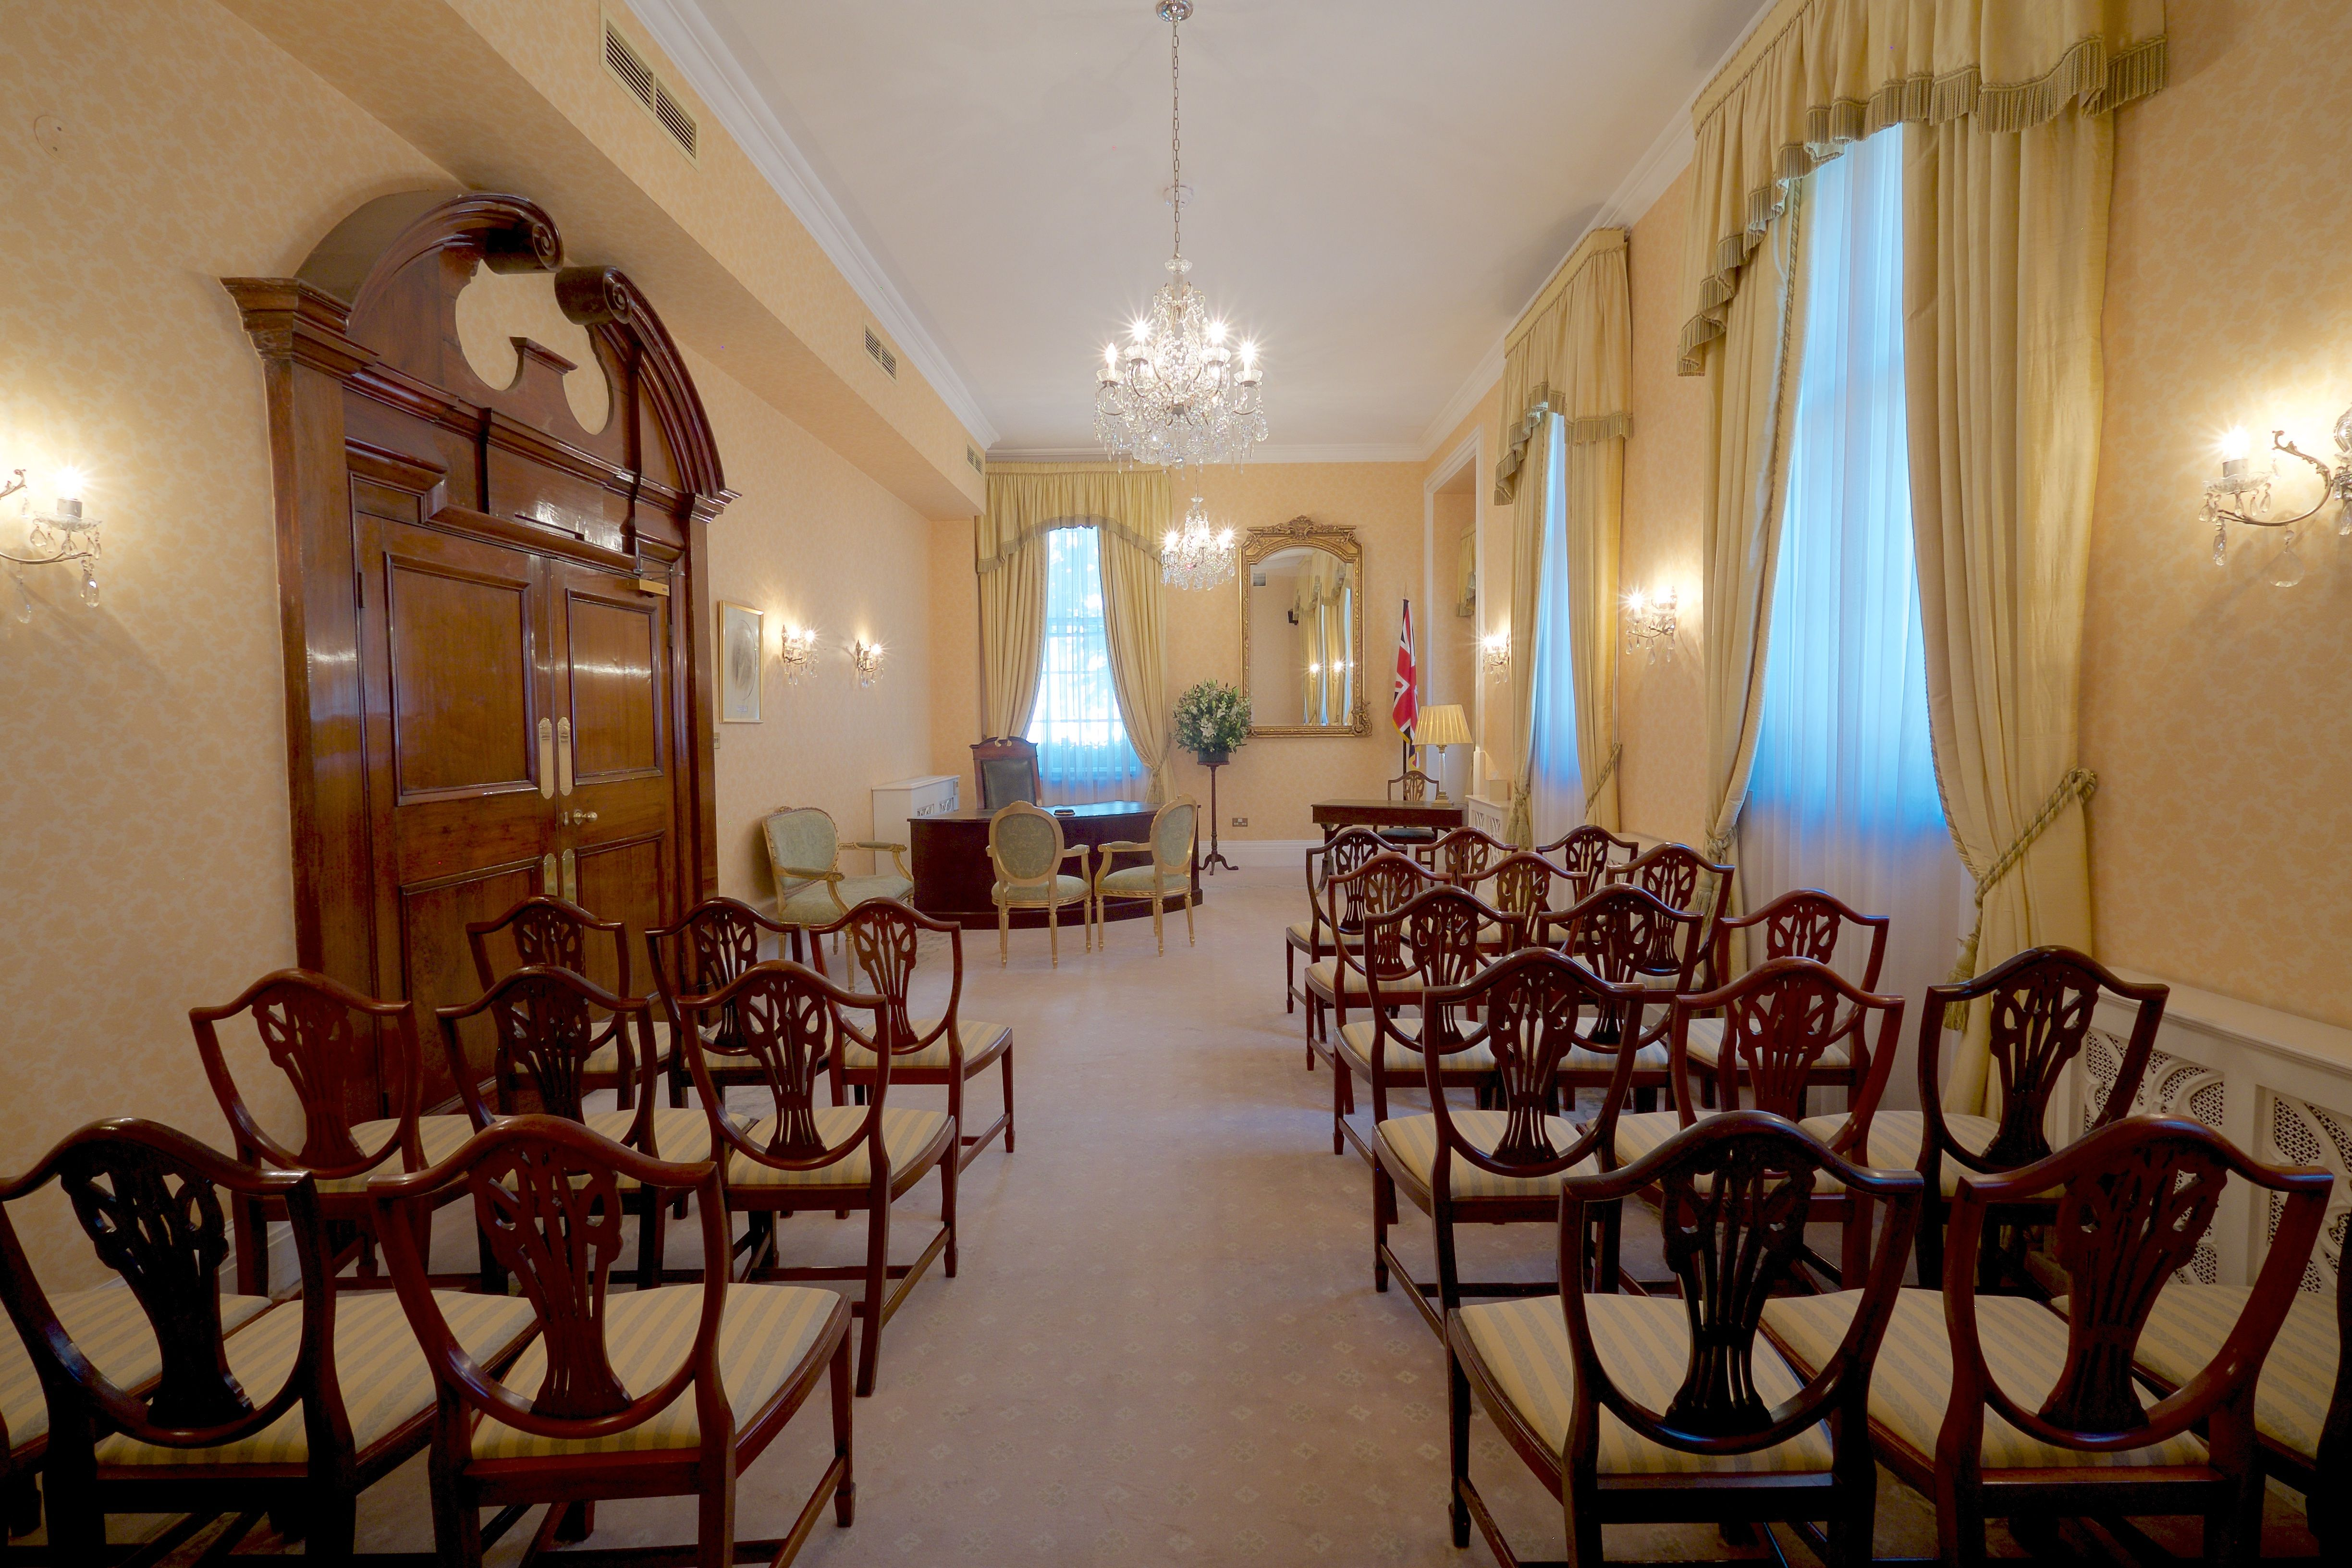 The Brydon Room At The Chelsea Old Town Hall Chelsea Old